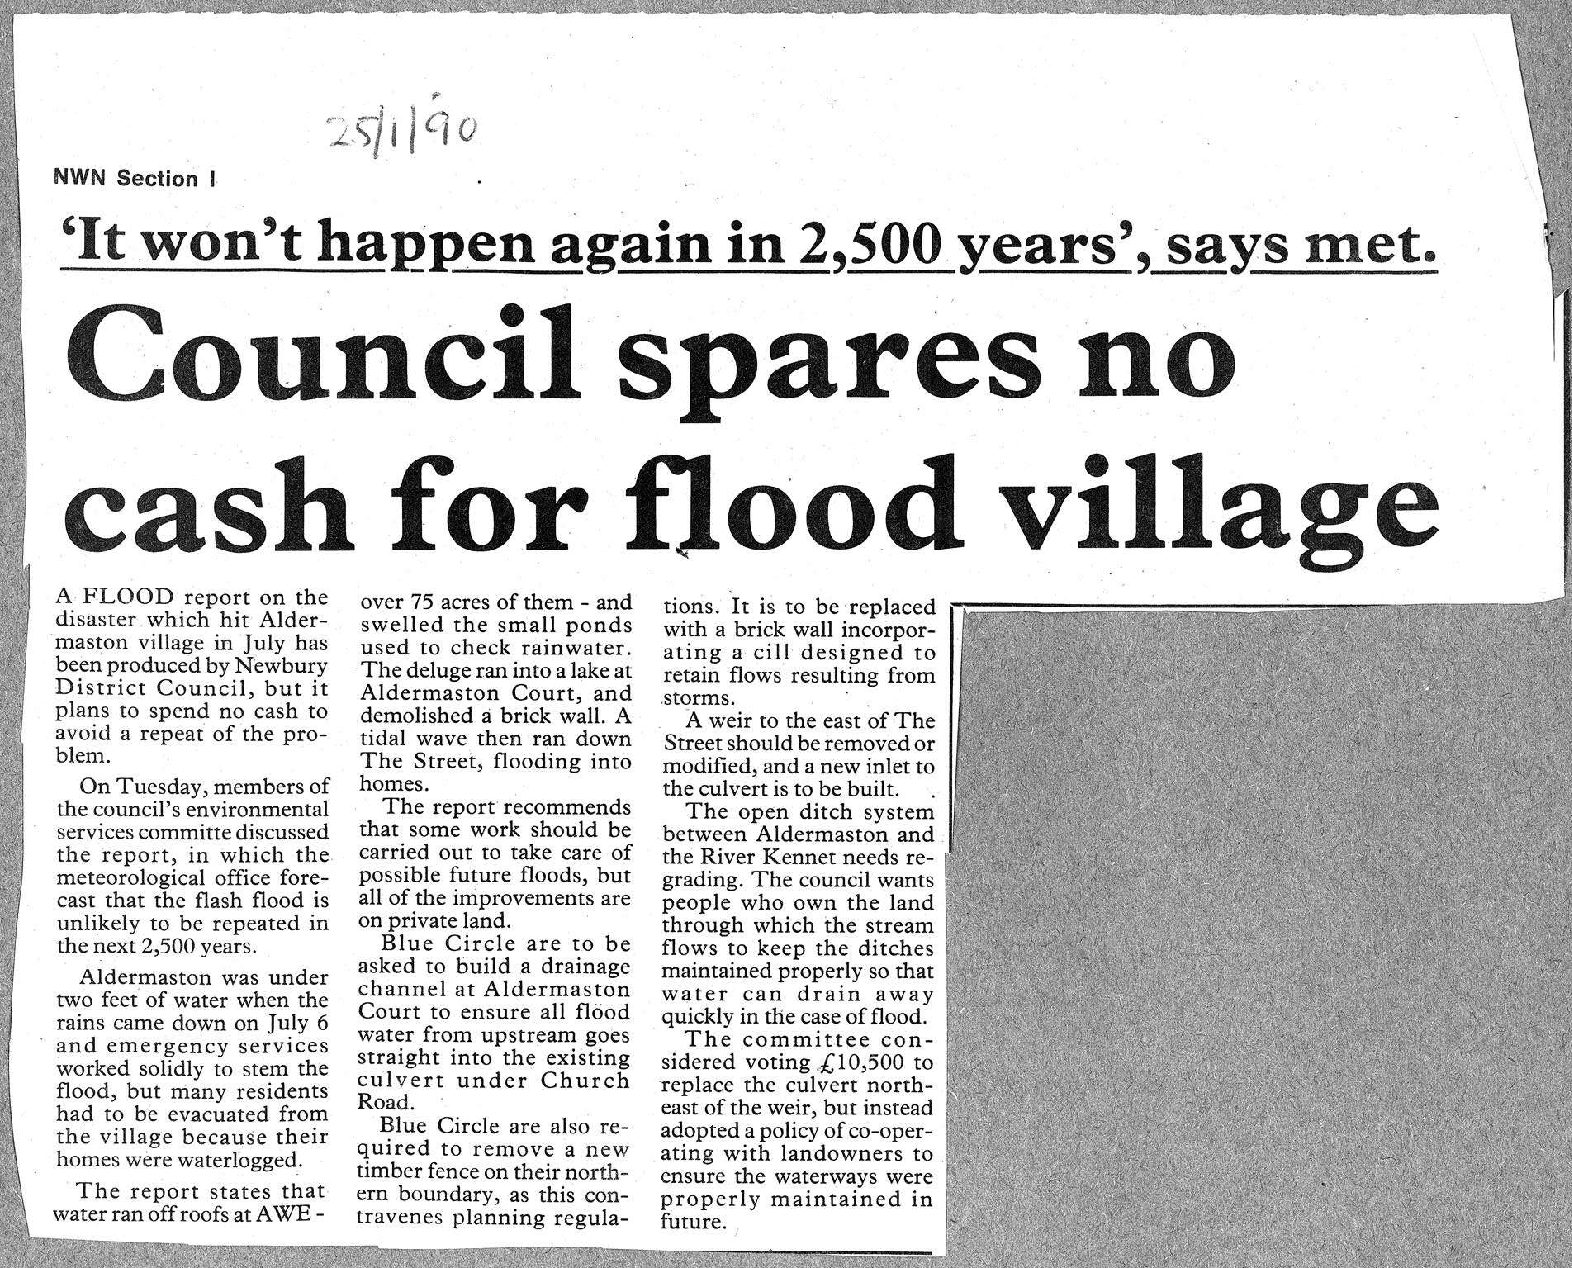 Council spares no cash for flooded village